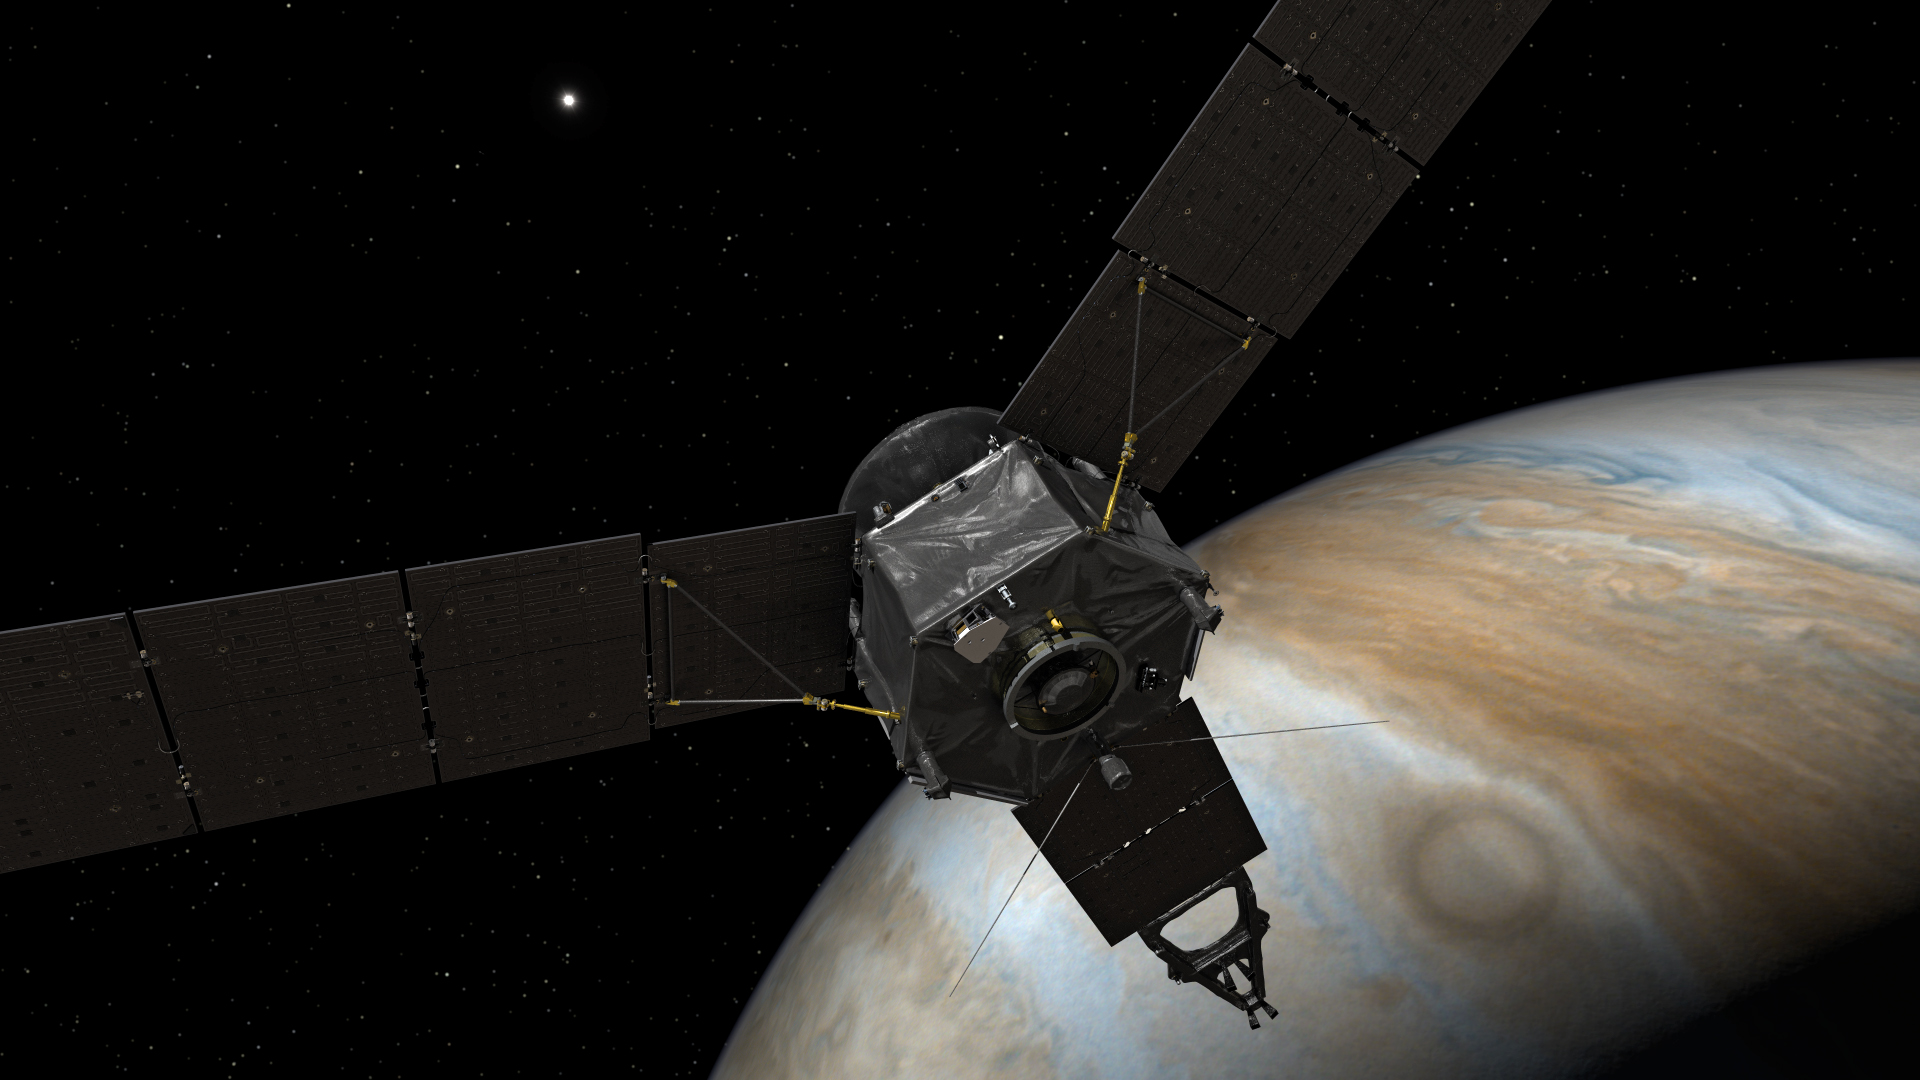 How Do Planets Form? Juno's Jupiter Mission Aims to Find Out